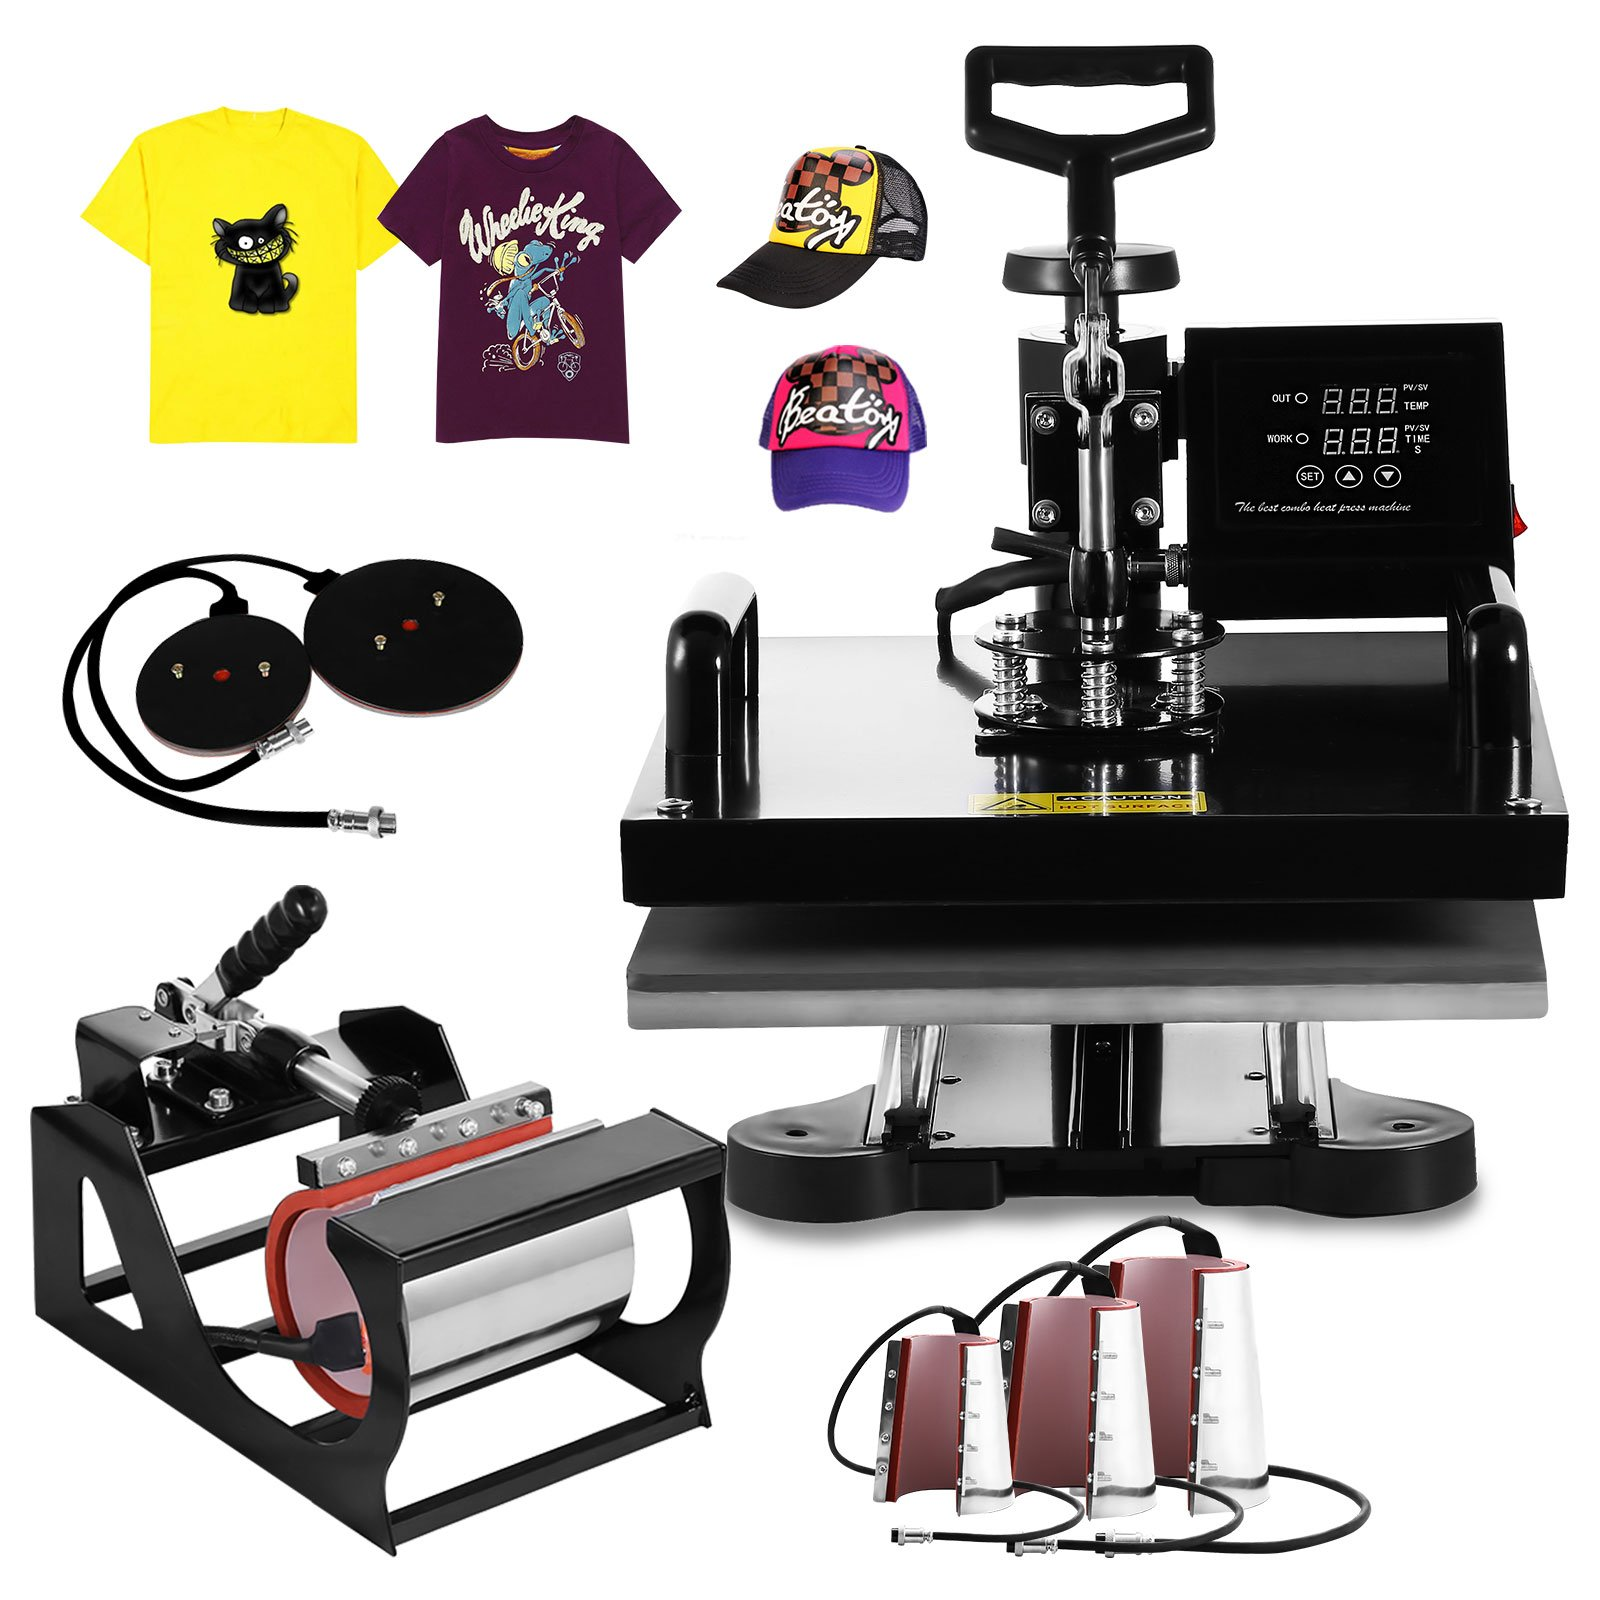 Happybuy 8 in 1 15'' X 15'' Heat Press 360 Degree Swing-away Heat Press Machine Multifunction Sublimation Combo T Shirt Press Machine for Mug Hat Plate Cap Mouse Pad (8 in 1 15'' X 15'') by Happybuy